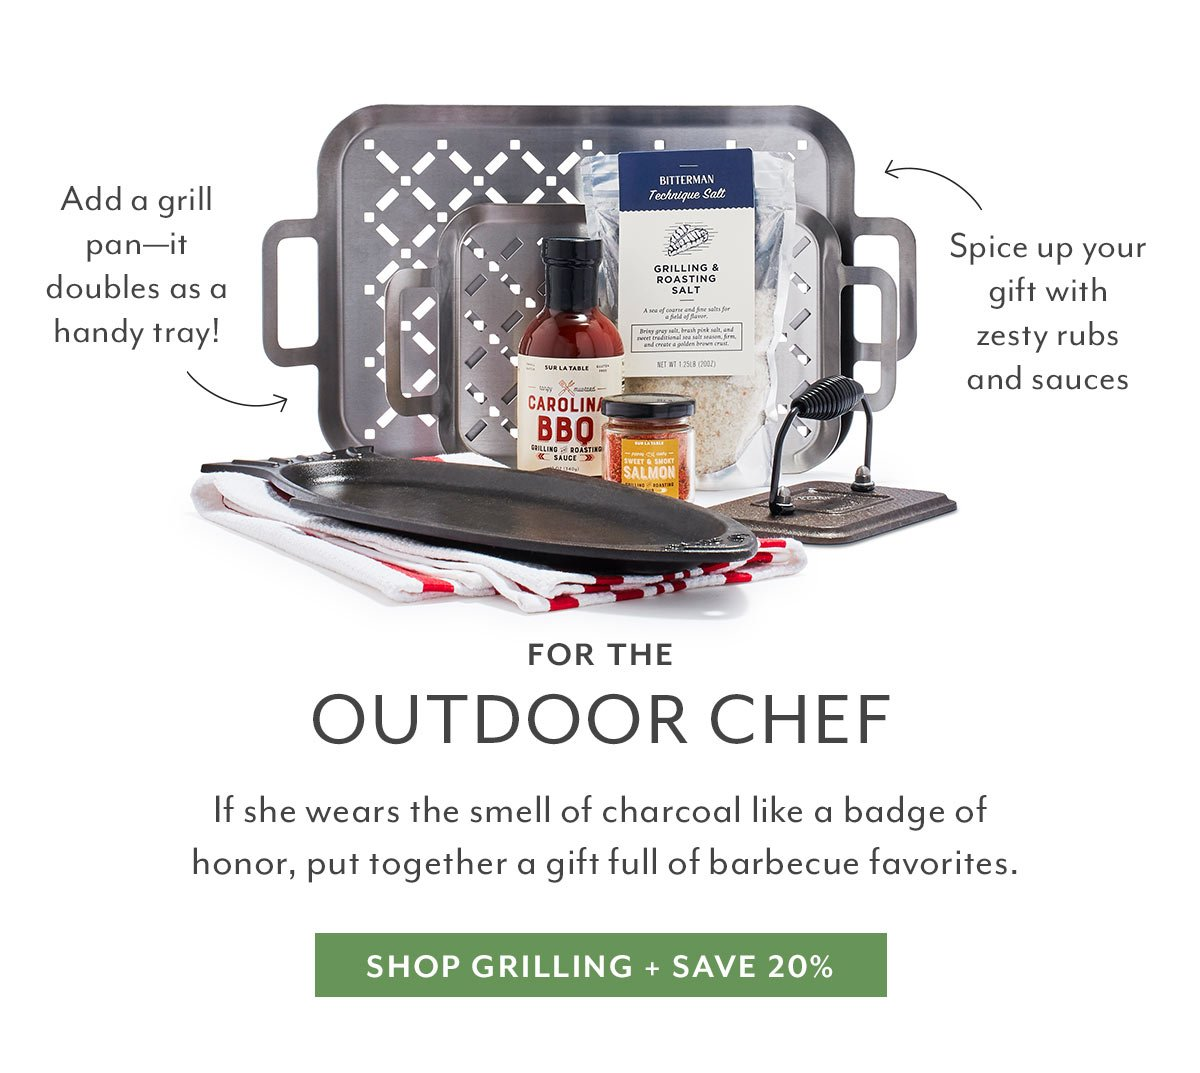 For the Outdoor Chef